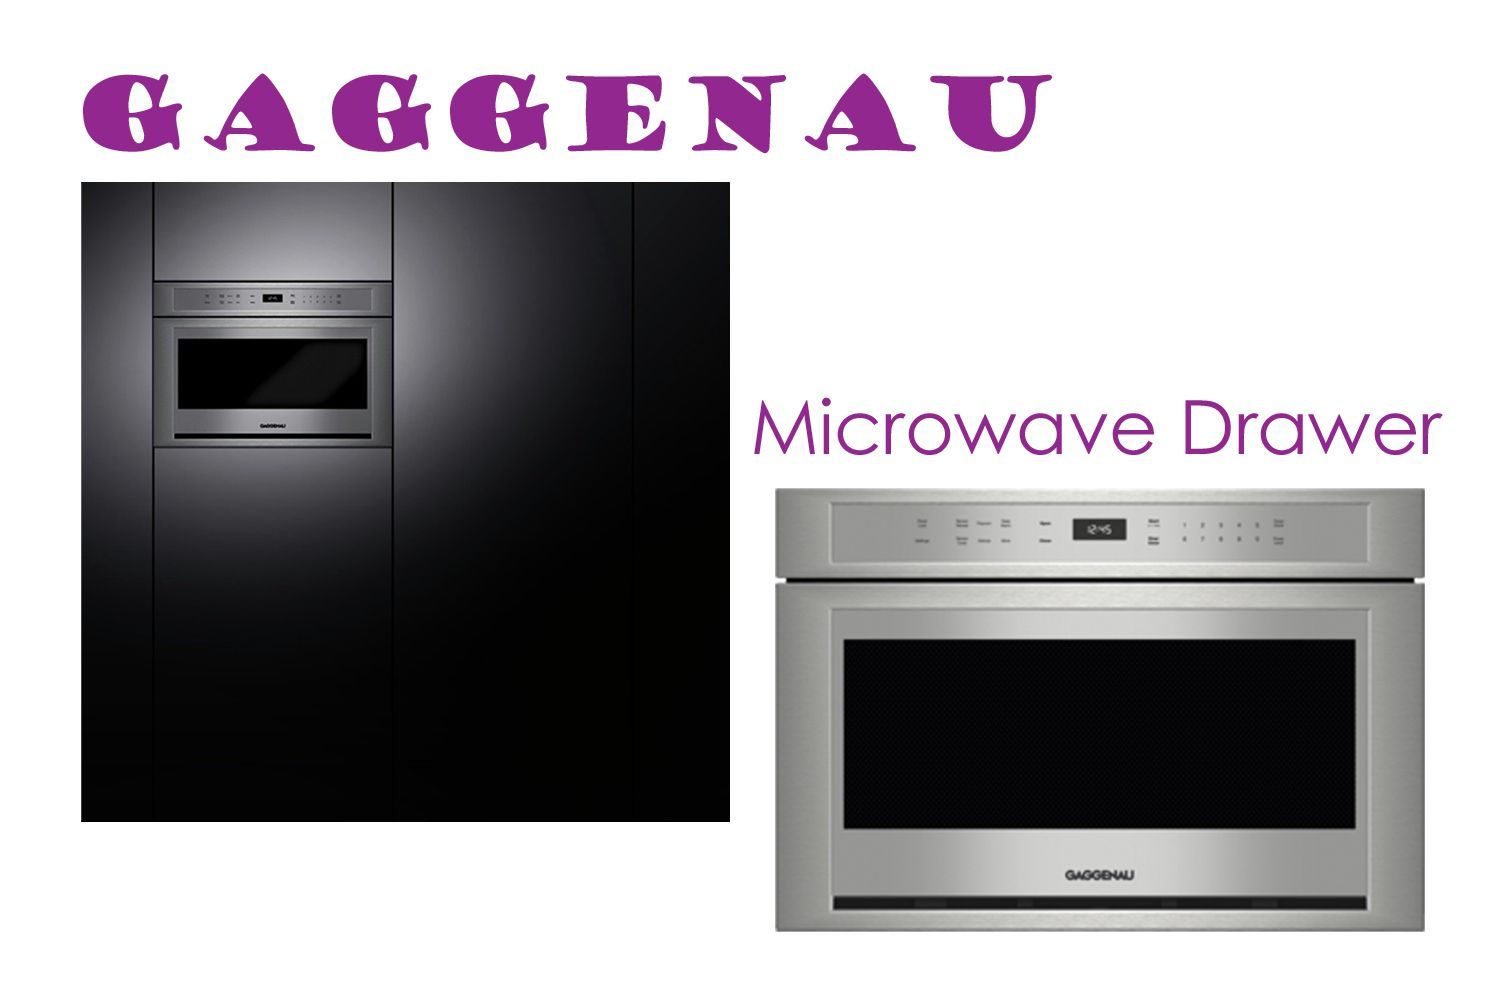 for design suitable other pro grand capability a option mg cooktop offers microwave grill the range gold archives and llc griddle burner simmer than s drawer cooking home kitchen bath steam btu making wok jamie thermador or